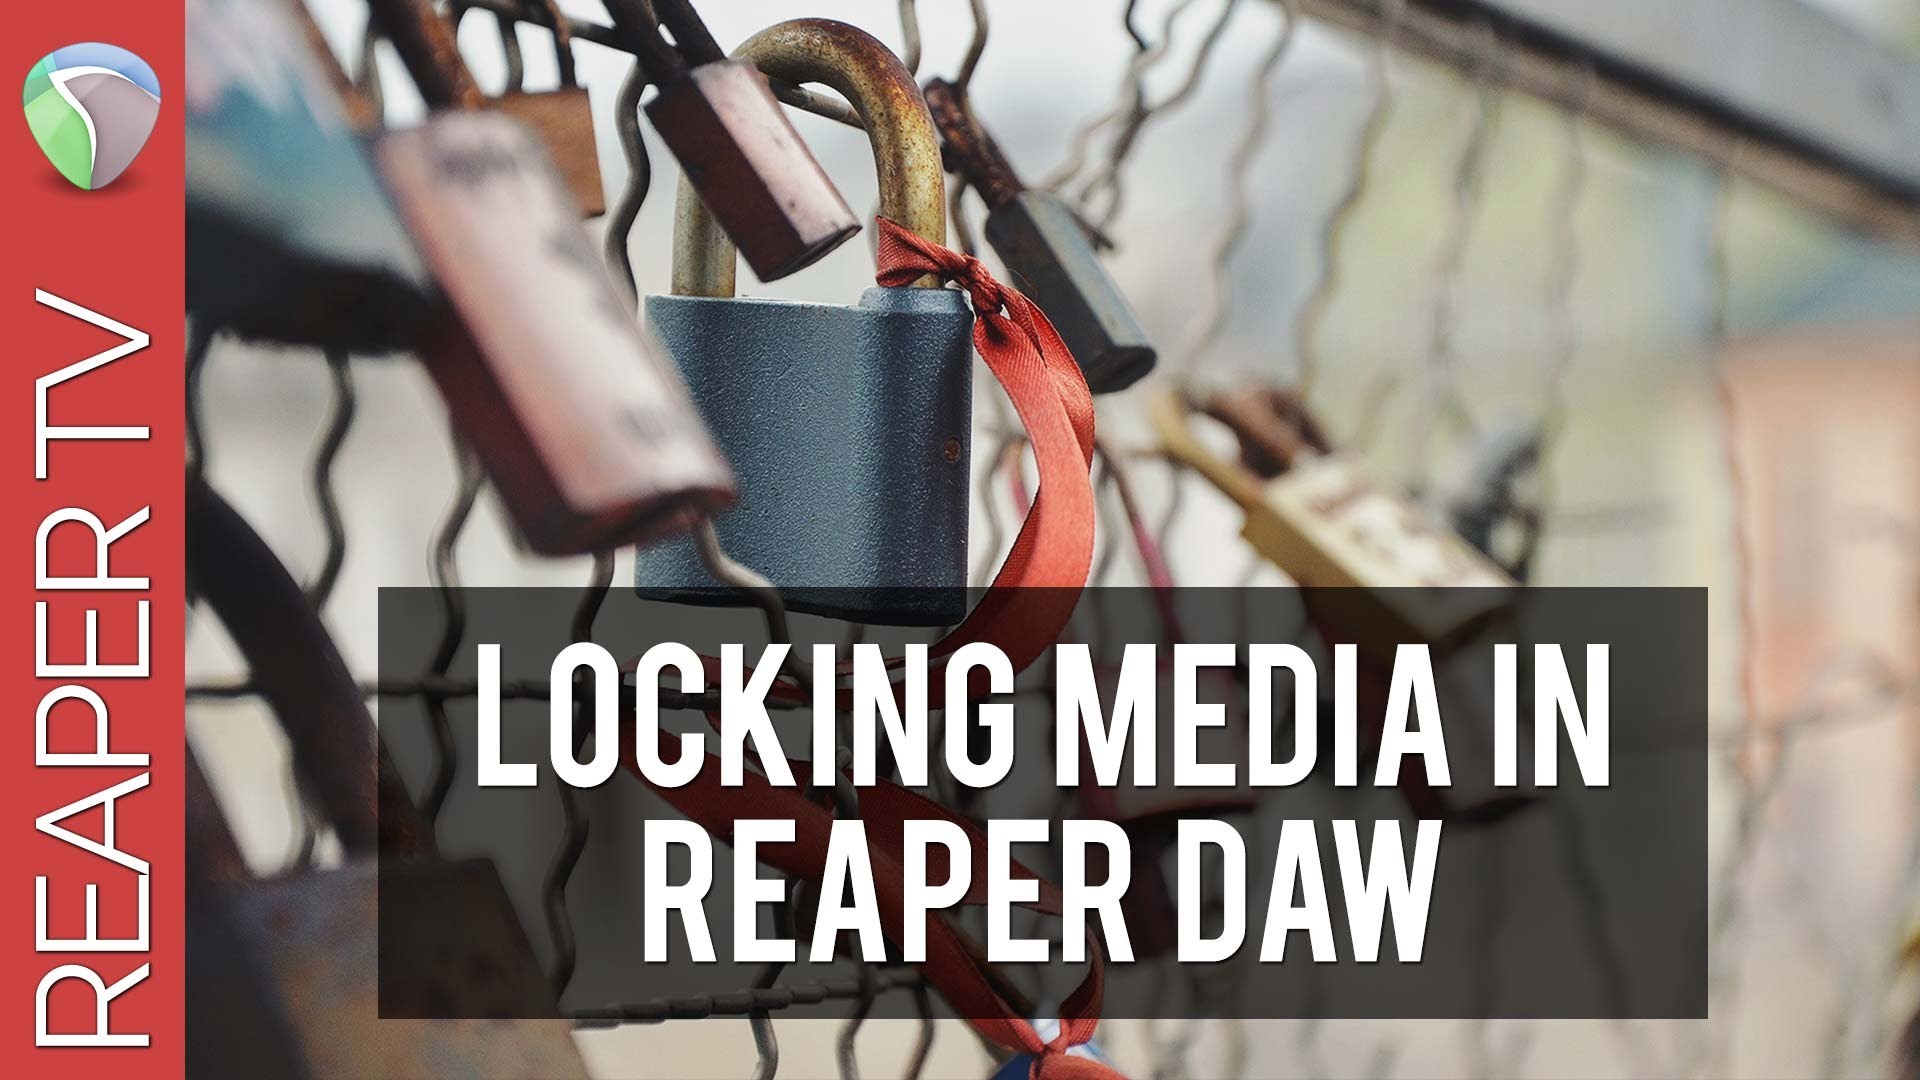 How To Lock Your Media in Reaper